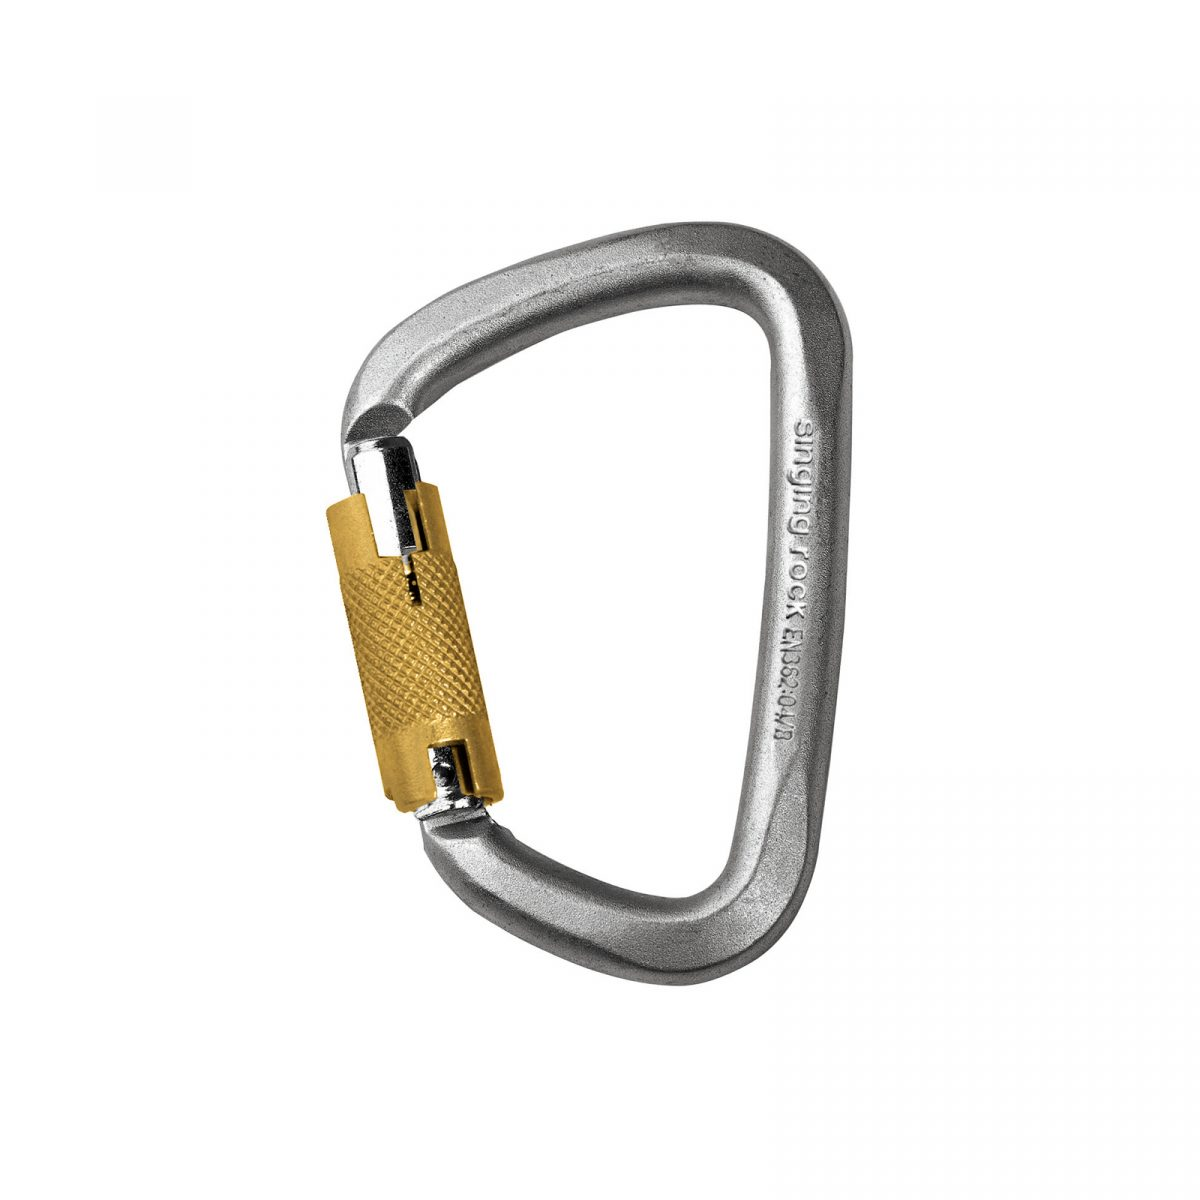 D Steel Triple-lock